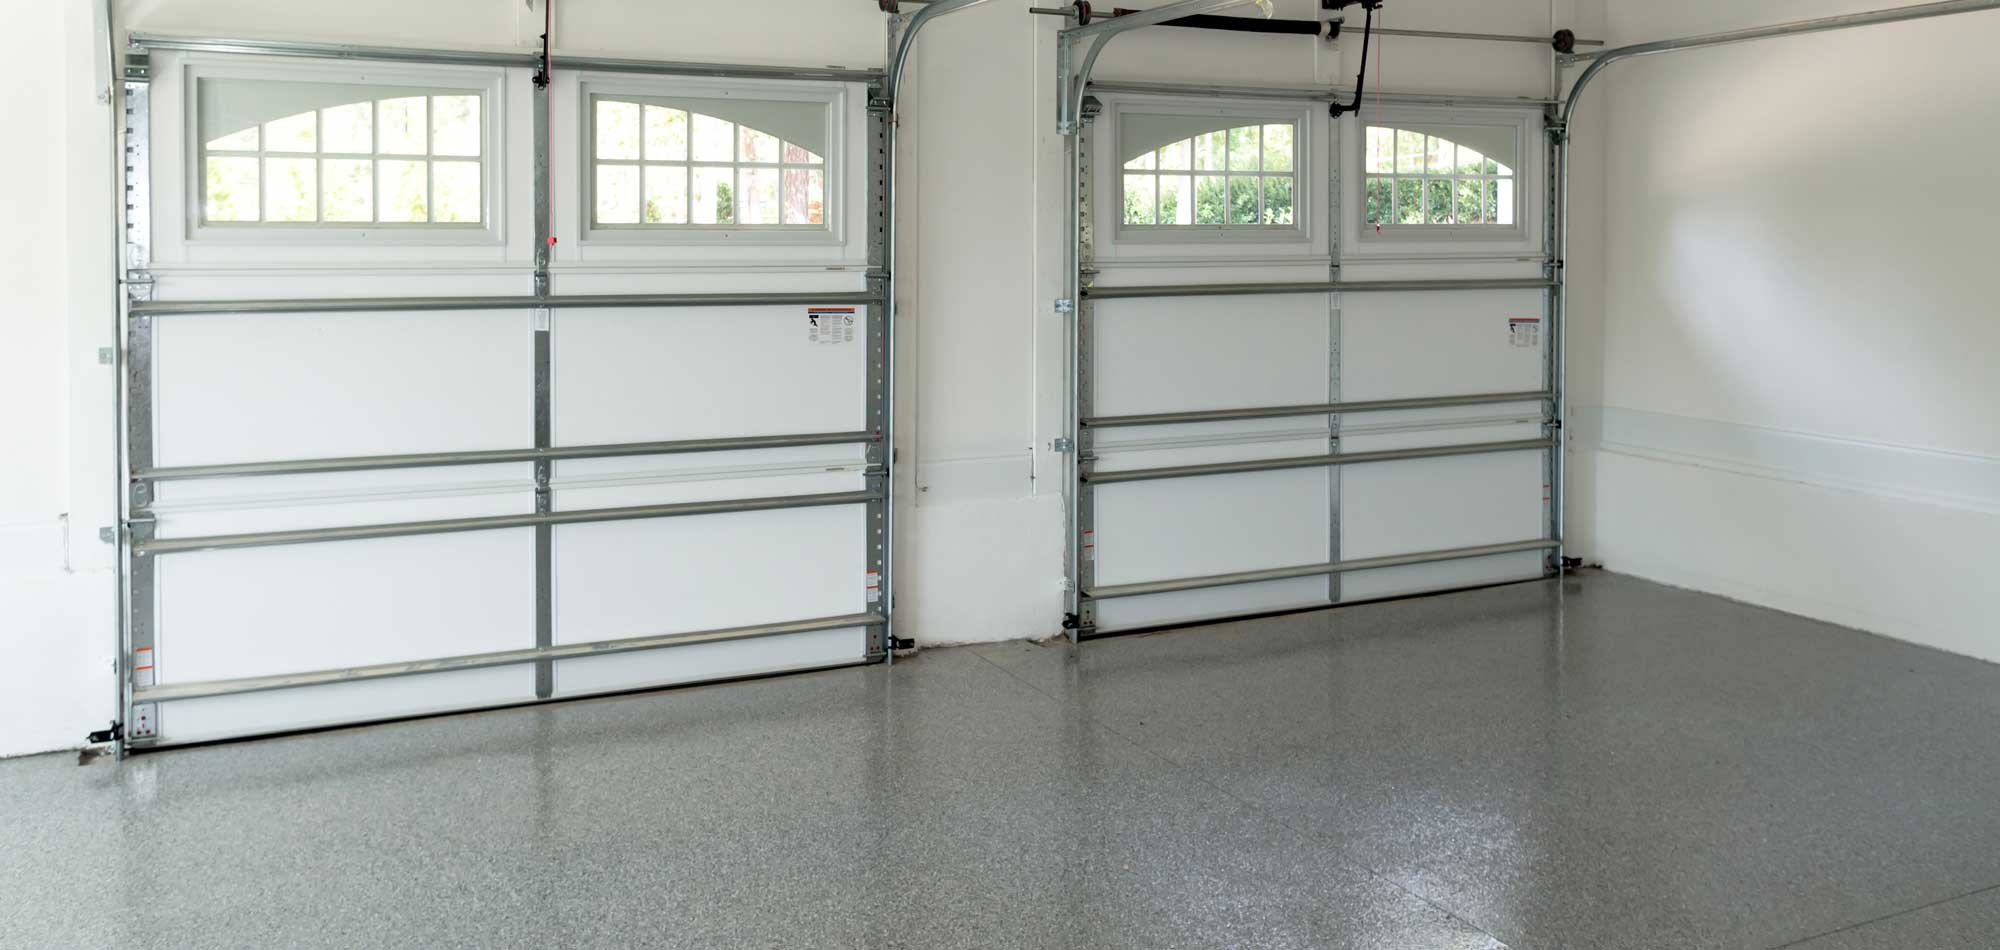 How Much Does Garage Floor Epoxy Cost In 2019 Inch Calculator